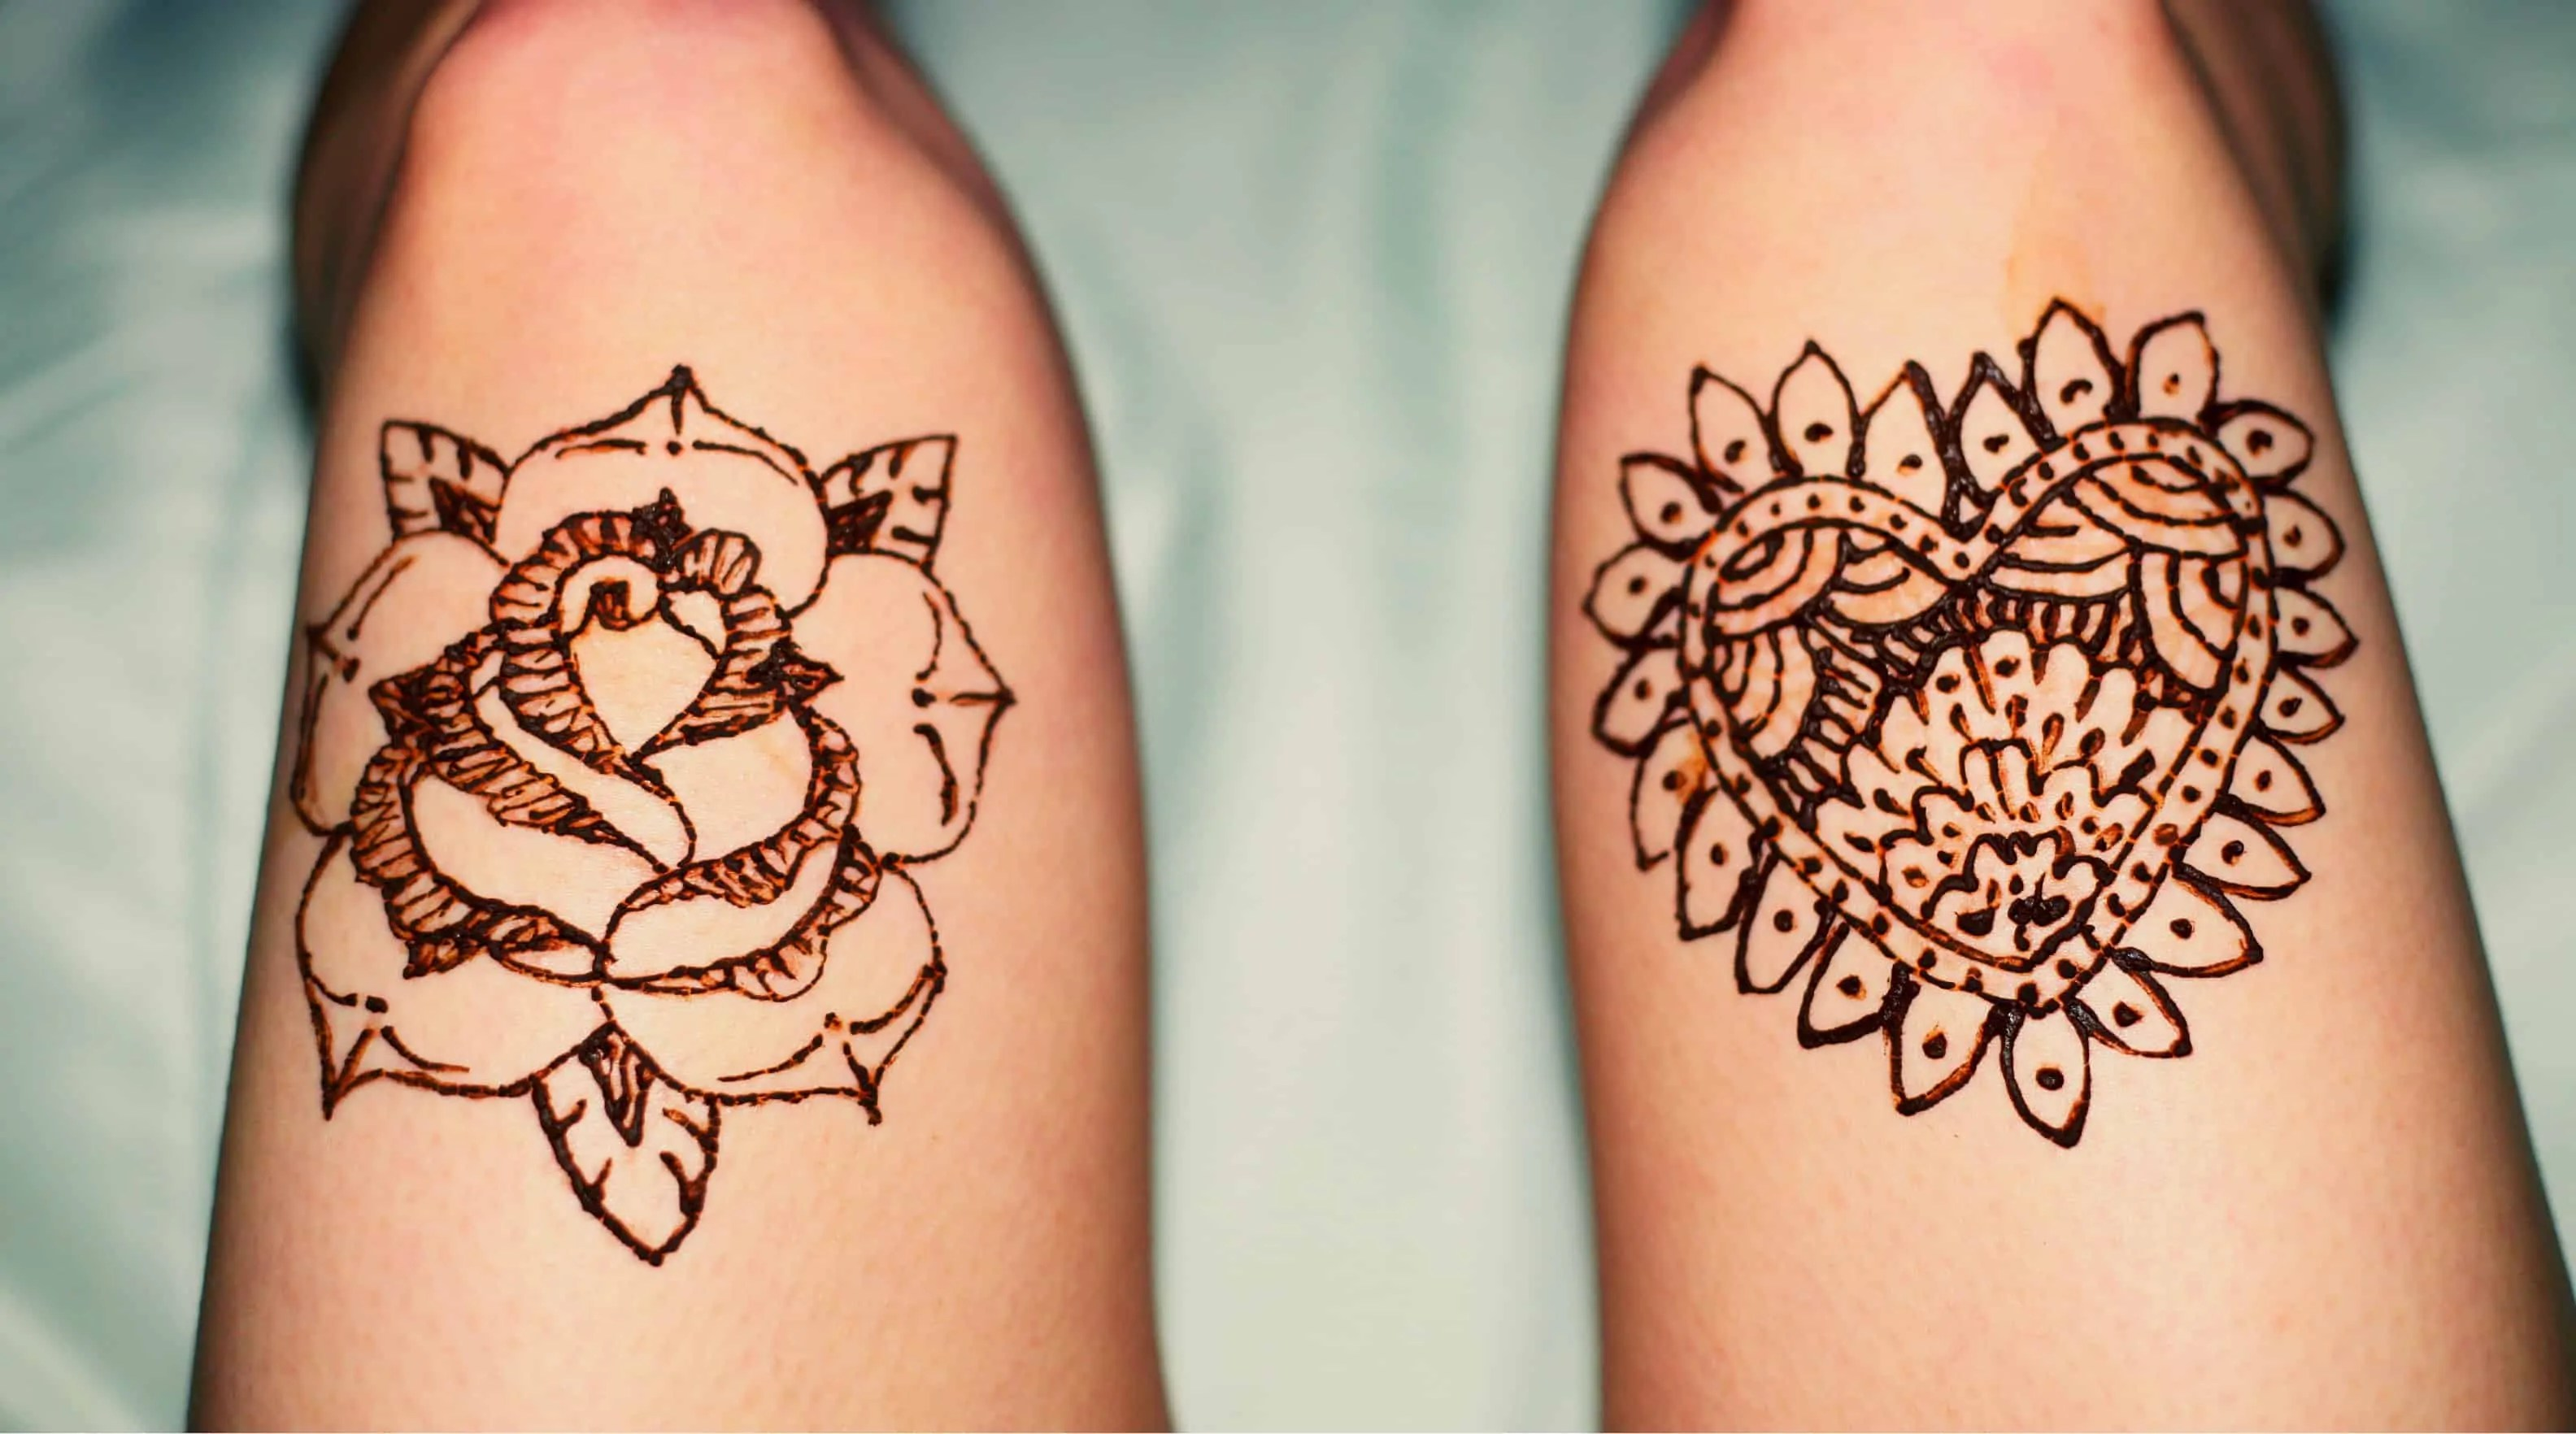 Mehndi Henna Las Vegas : Henna art of roses on leg tattoos spot